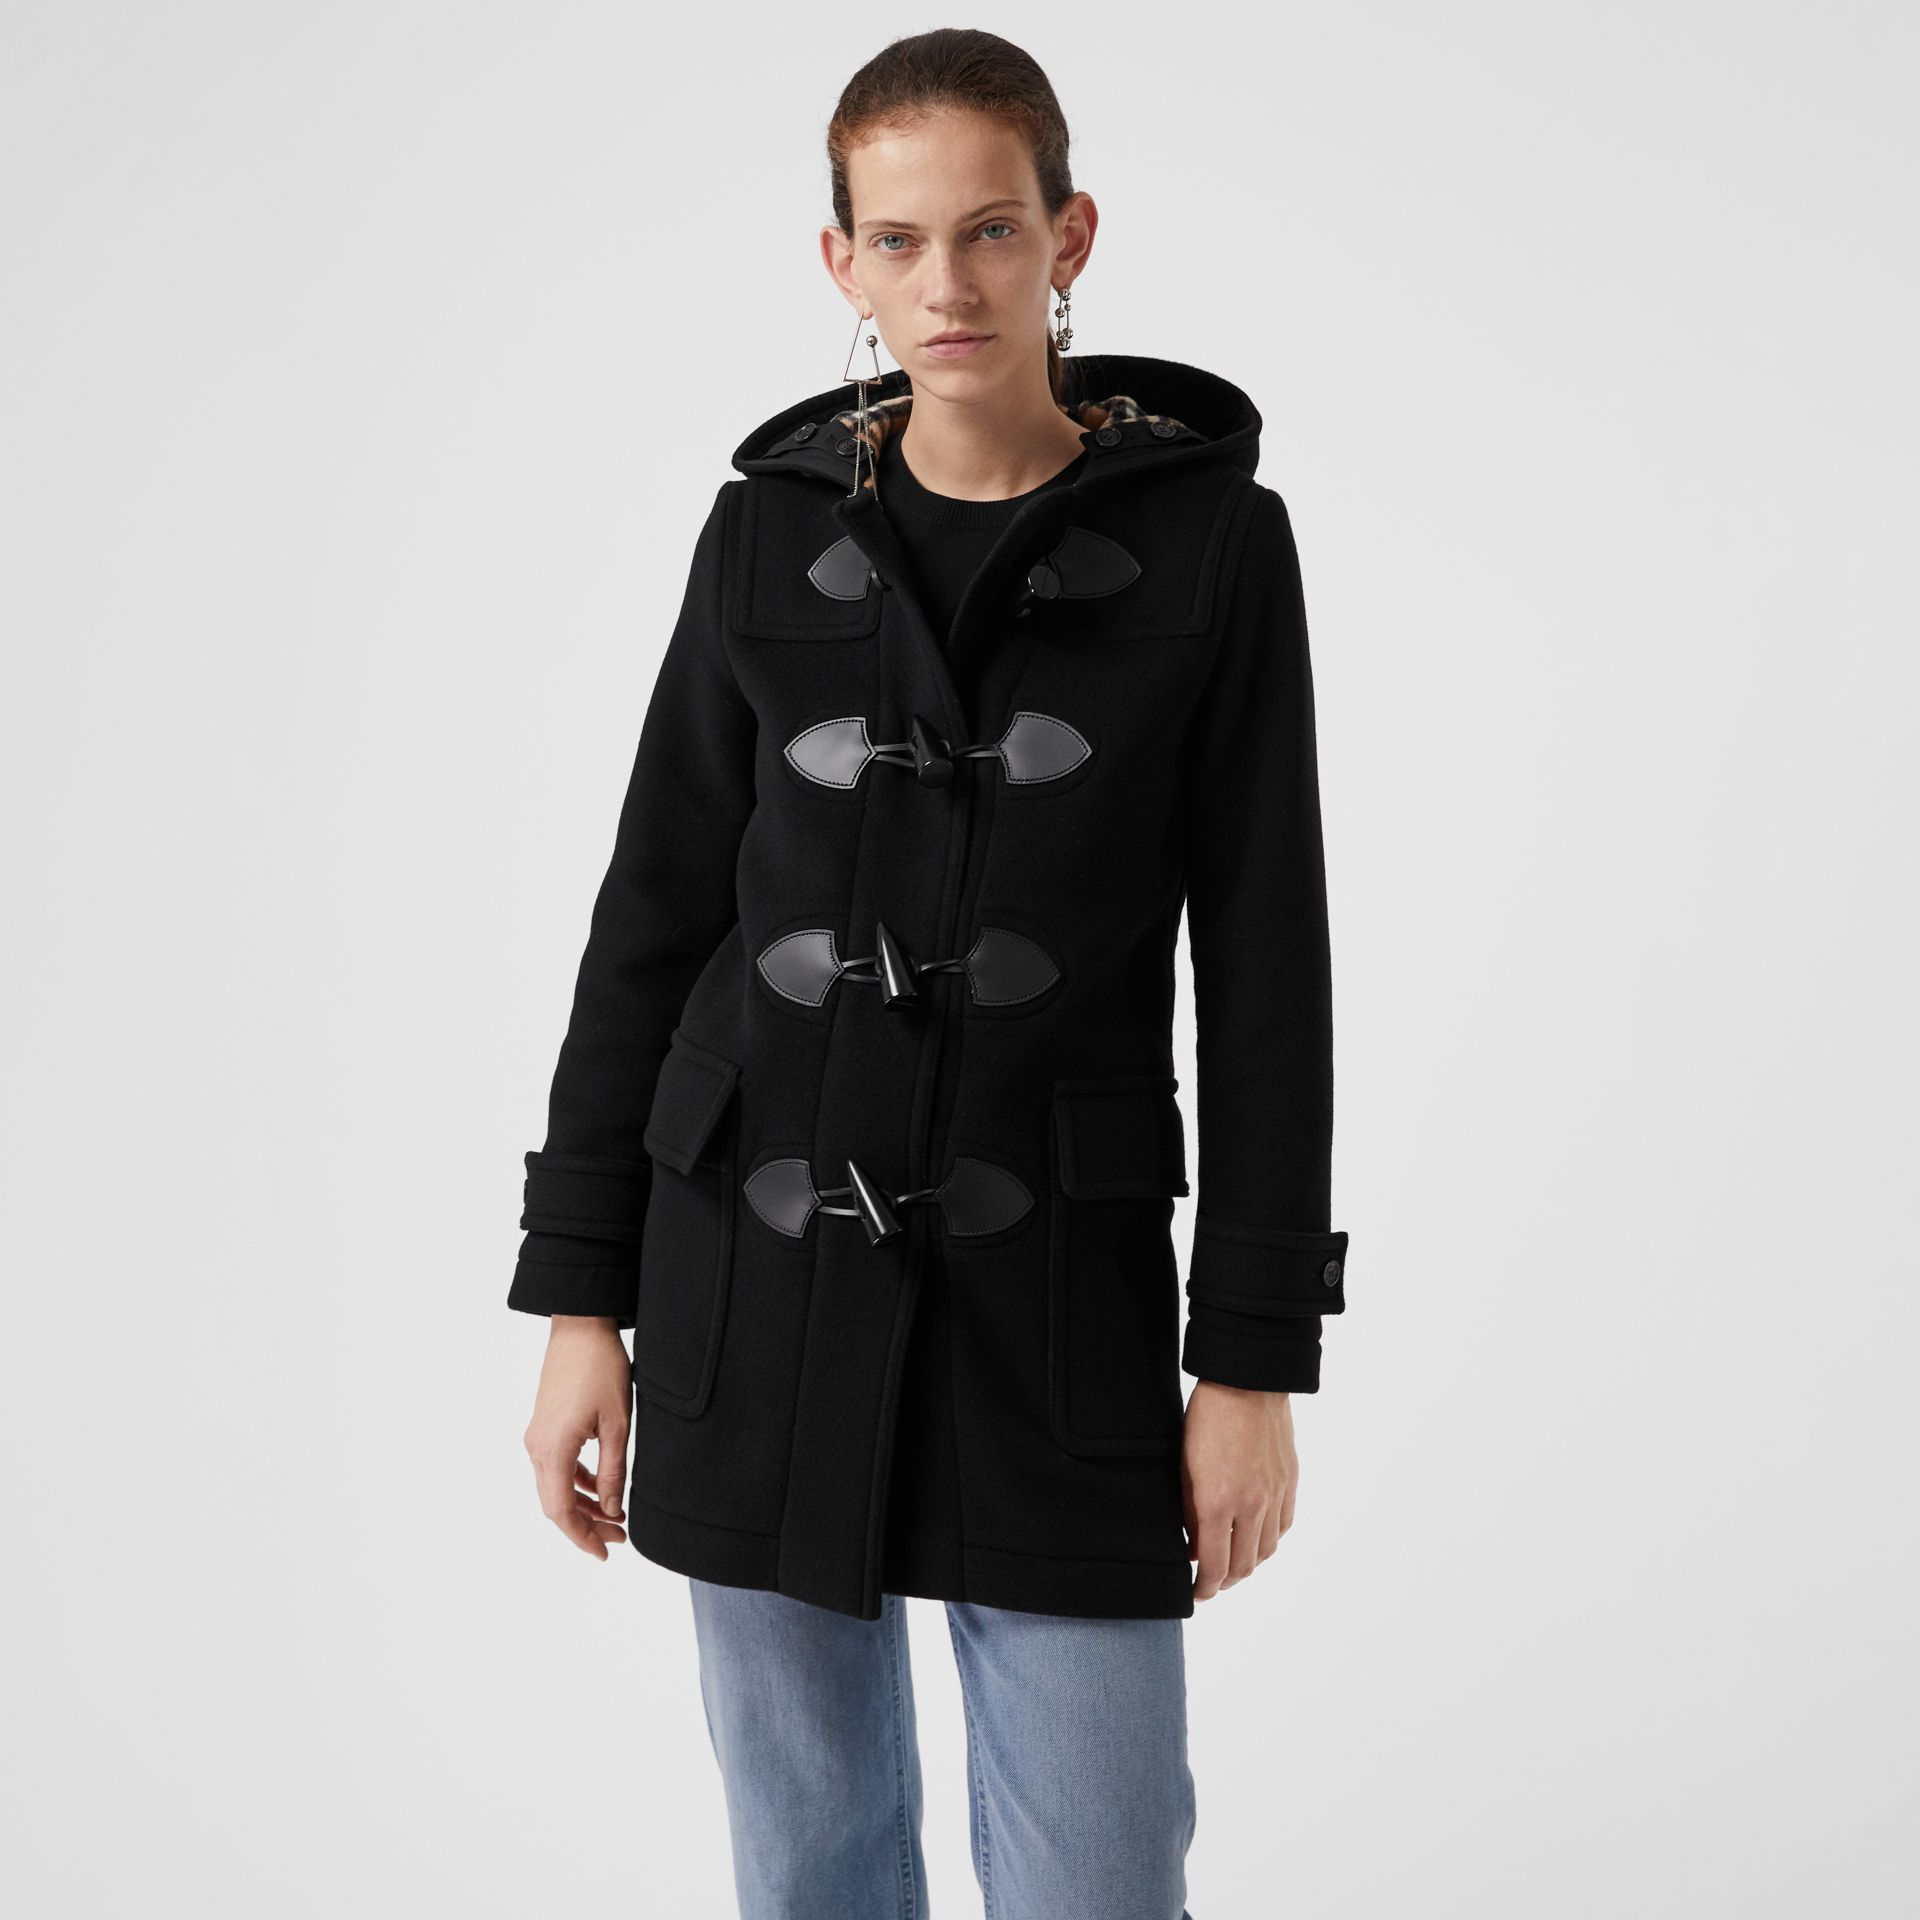 Wool Blend Duffle Coat in Black - Women | Burberry - gallery image 5